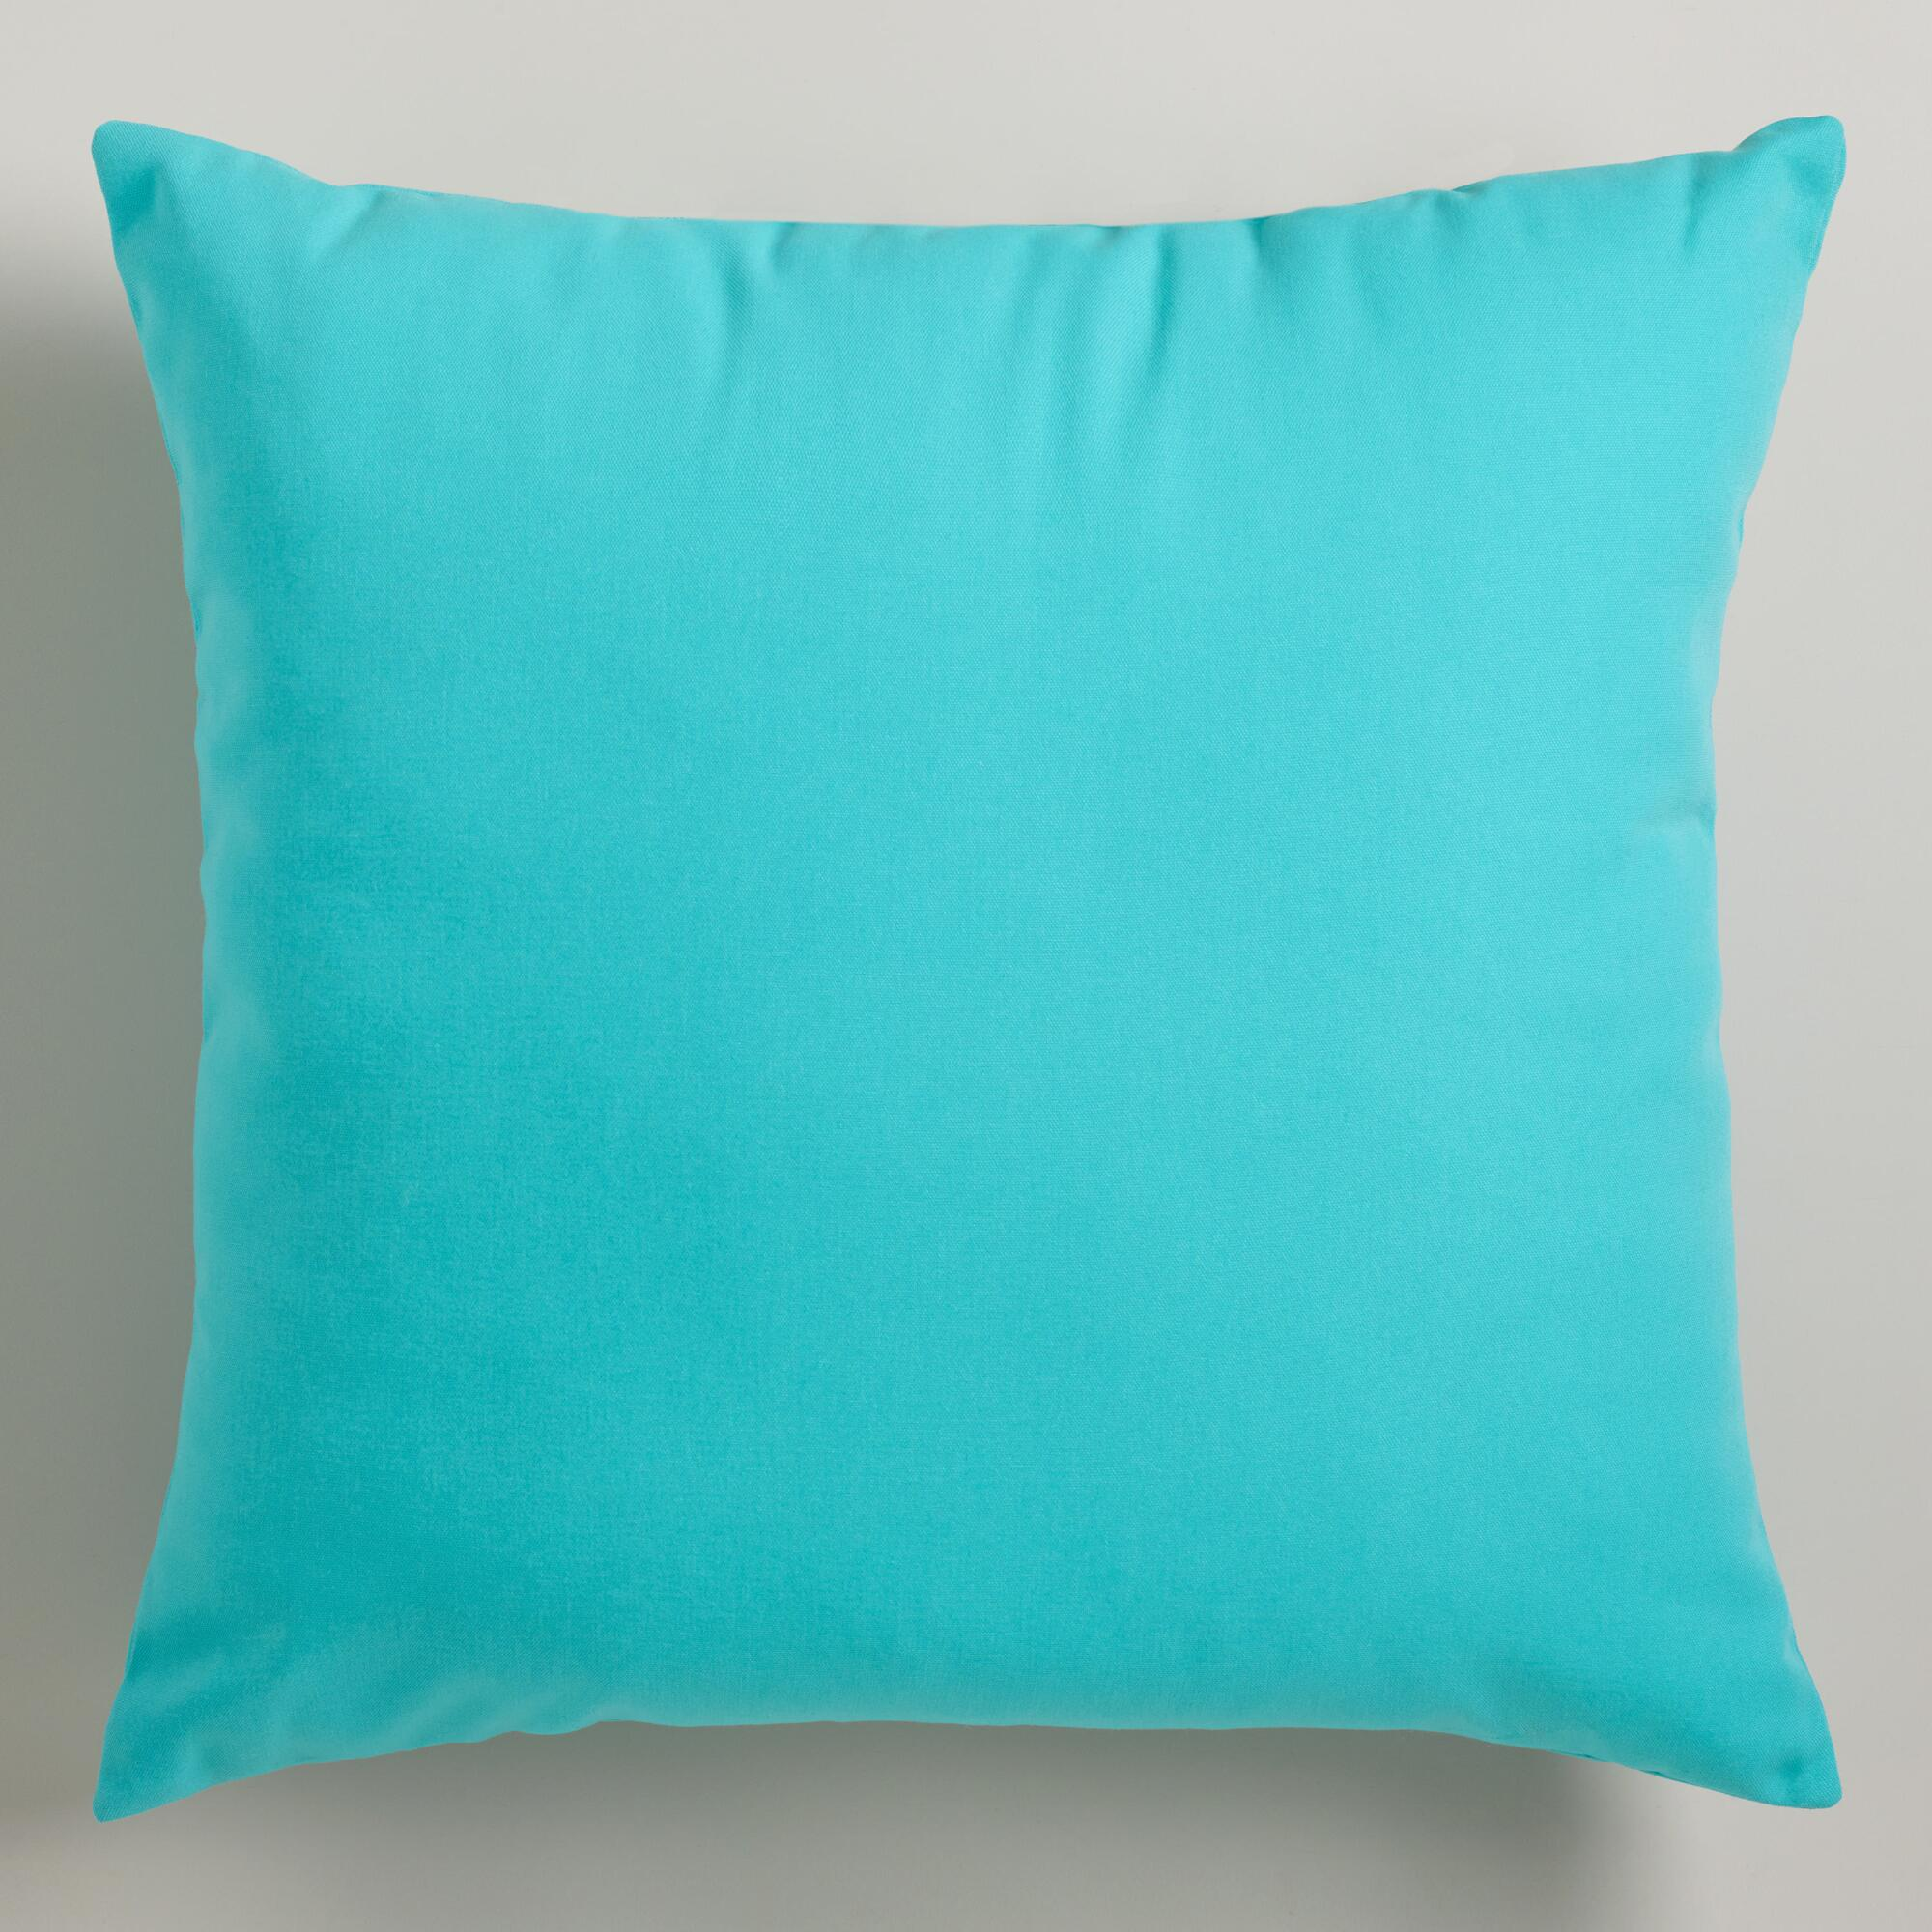 Decorative Pillows In Turquoise : Turquoise Decorative Pillows